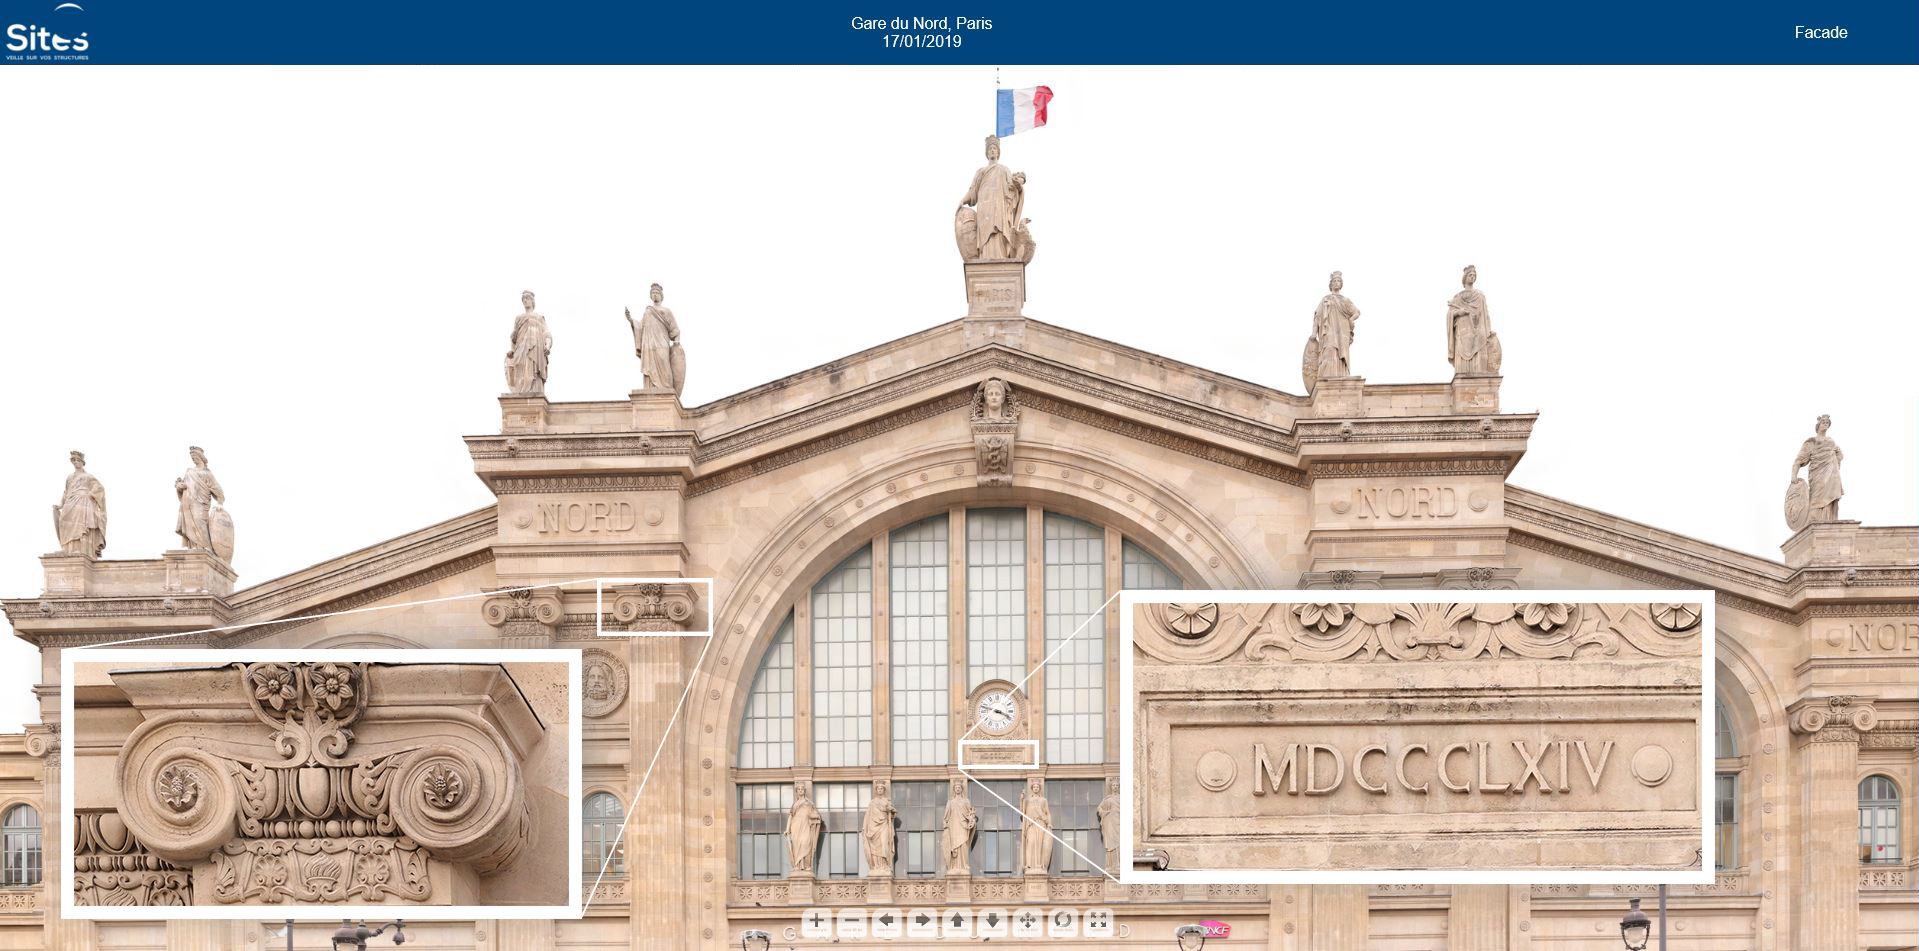 Facade Gare du Nord SITES